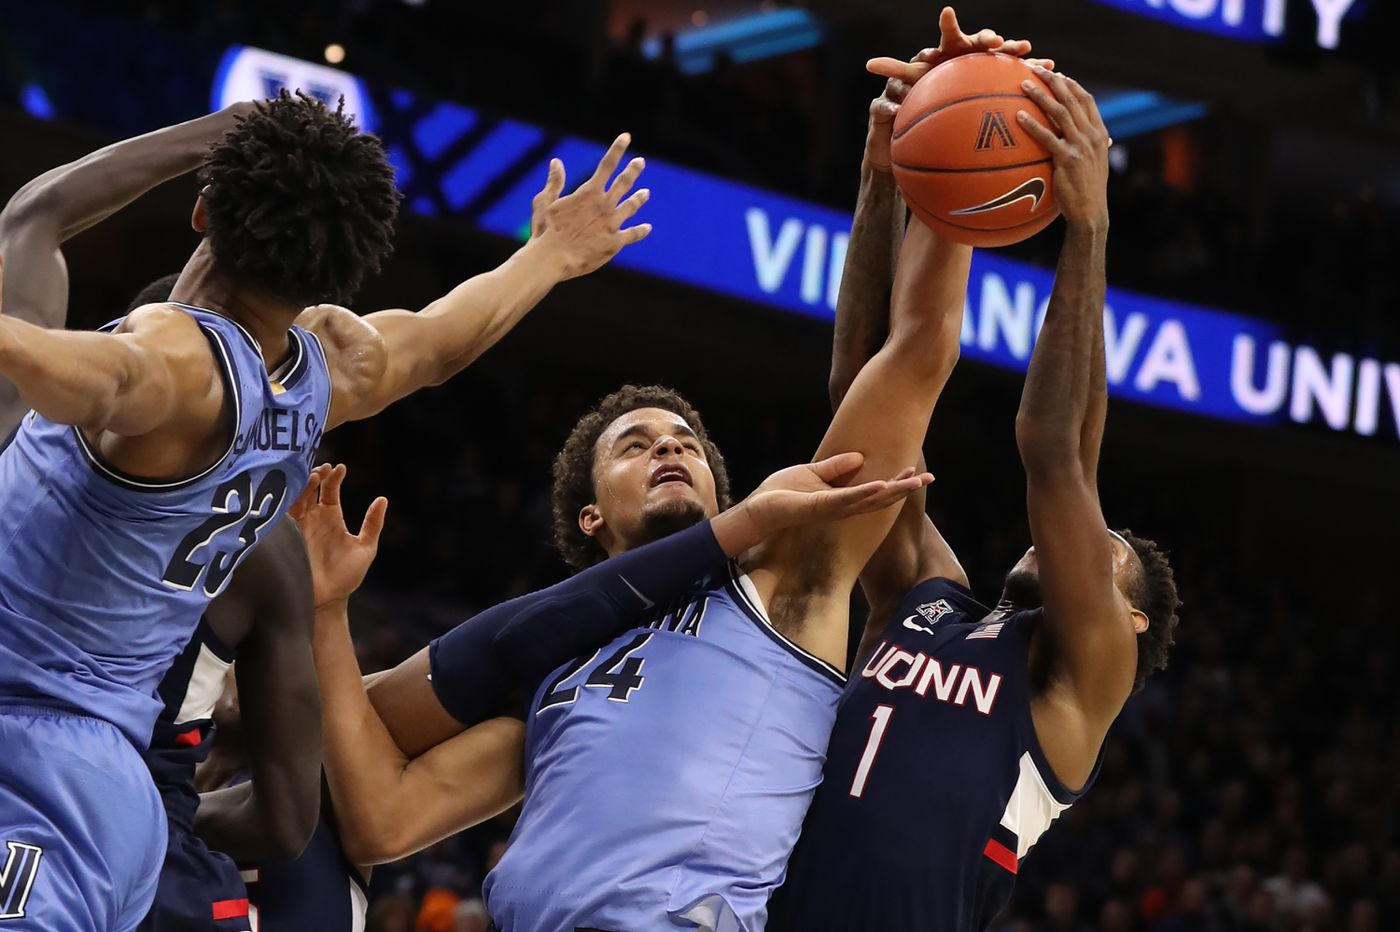 Villanova and UConn play a Big East game, officially or not | Mike Jensen